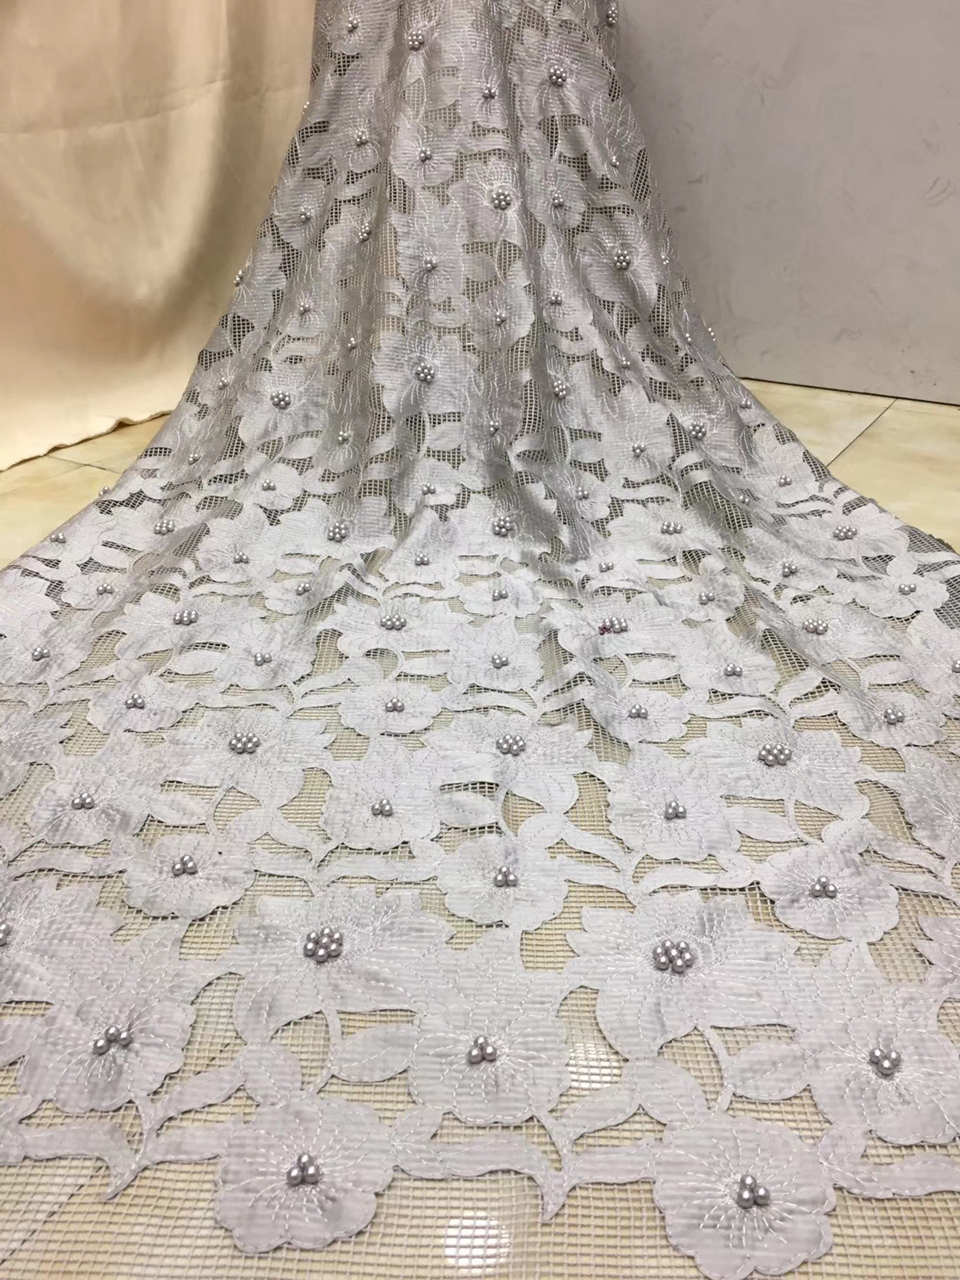 Newly Designed Embroidery Fabric, African Grid Lace Fabric French High Quality Lace with Delicate BeadsNewly Designed Embroidery Fabric, African Grid Lace Fabric French High Quality Lace with Delicate Beads